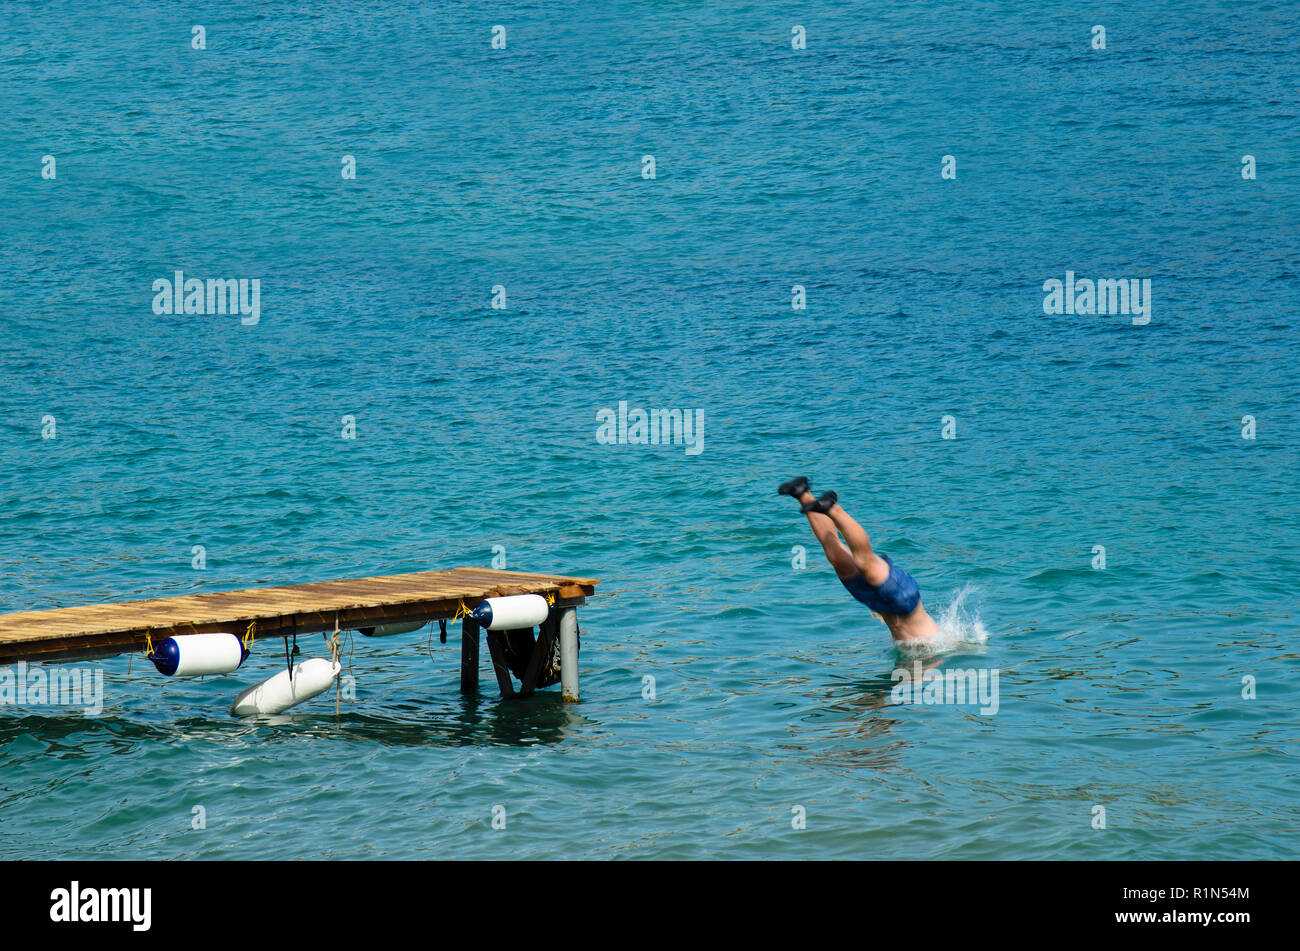 Man in a bathing suit dives into the sea from a wooden pier, wearing black rubber shoes Stock Photo